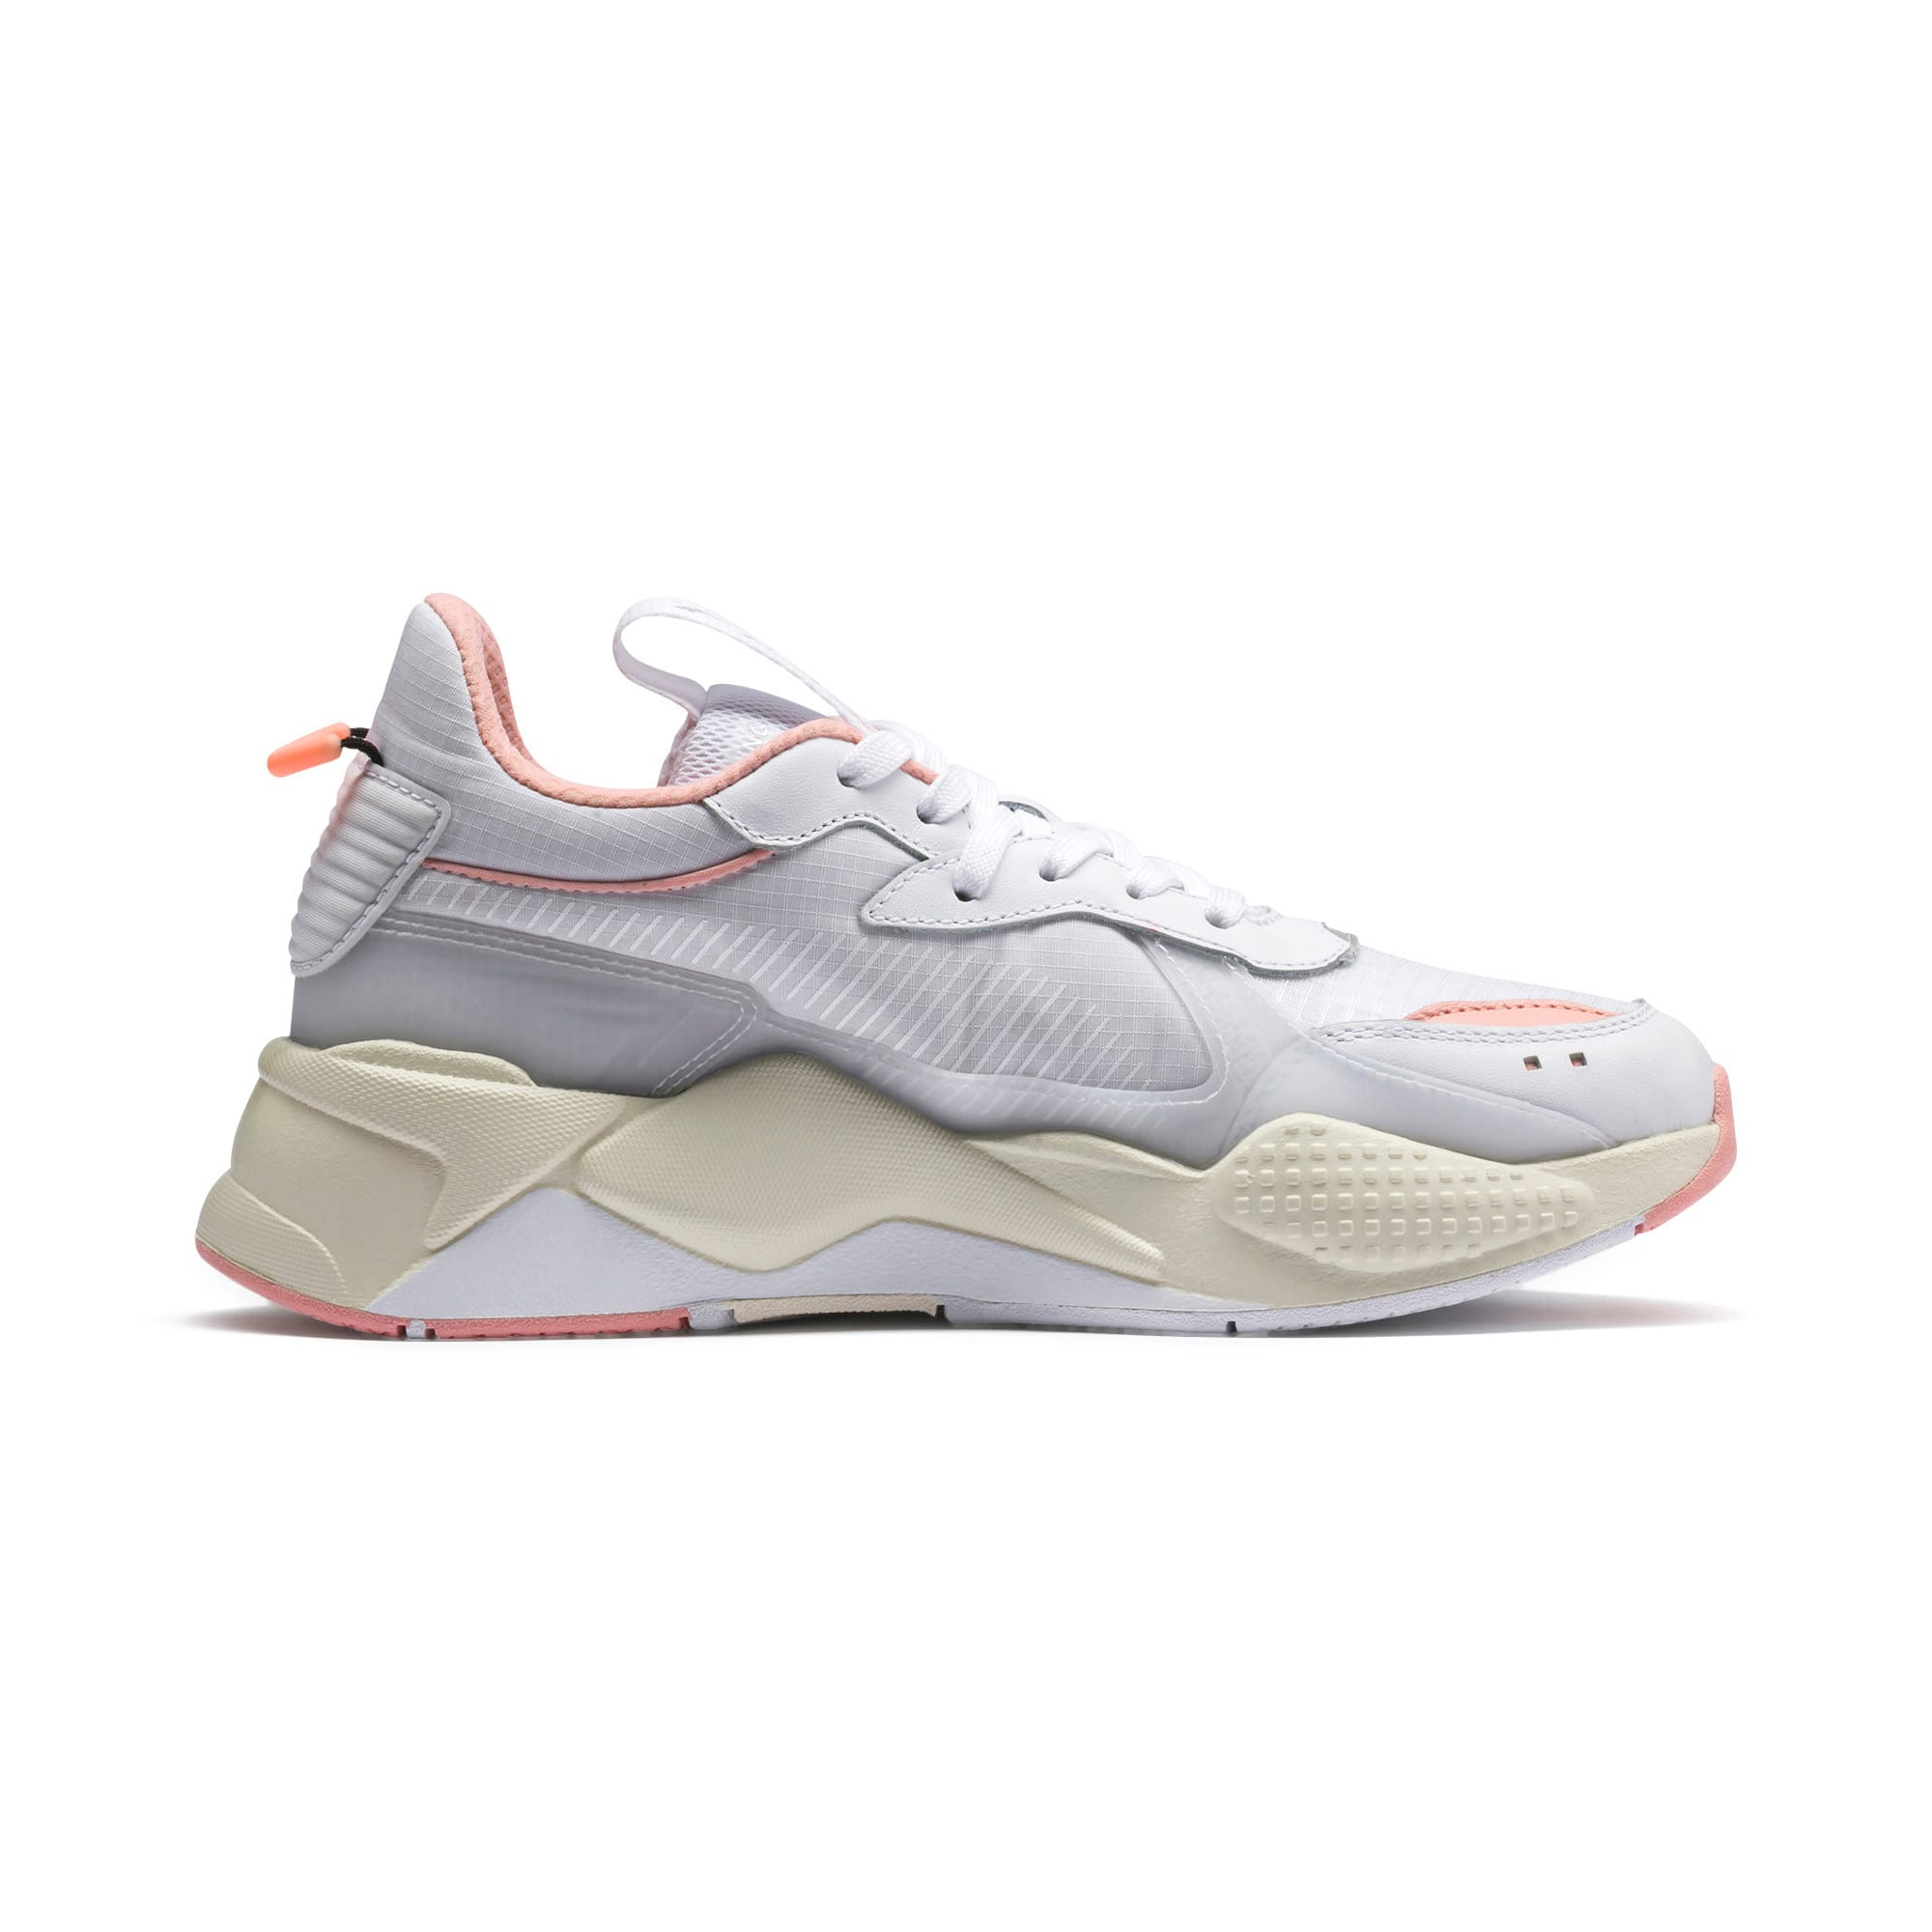 Thumbnail 6 of RS-X TECH Sneakers, Puma White-Peach Bud, medium